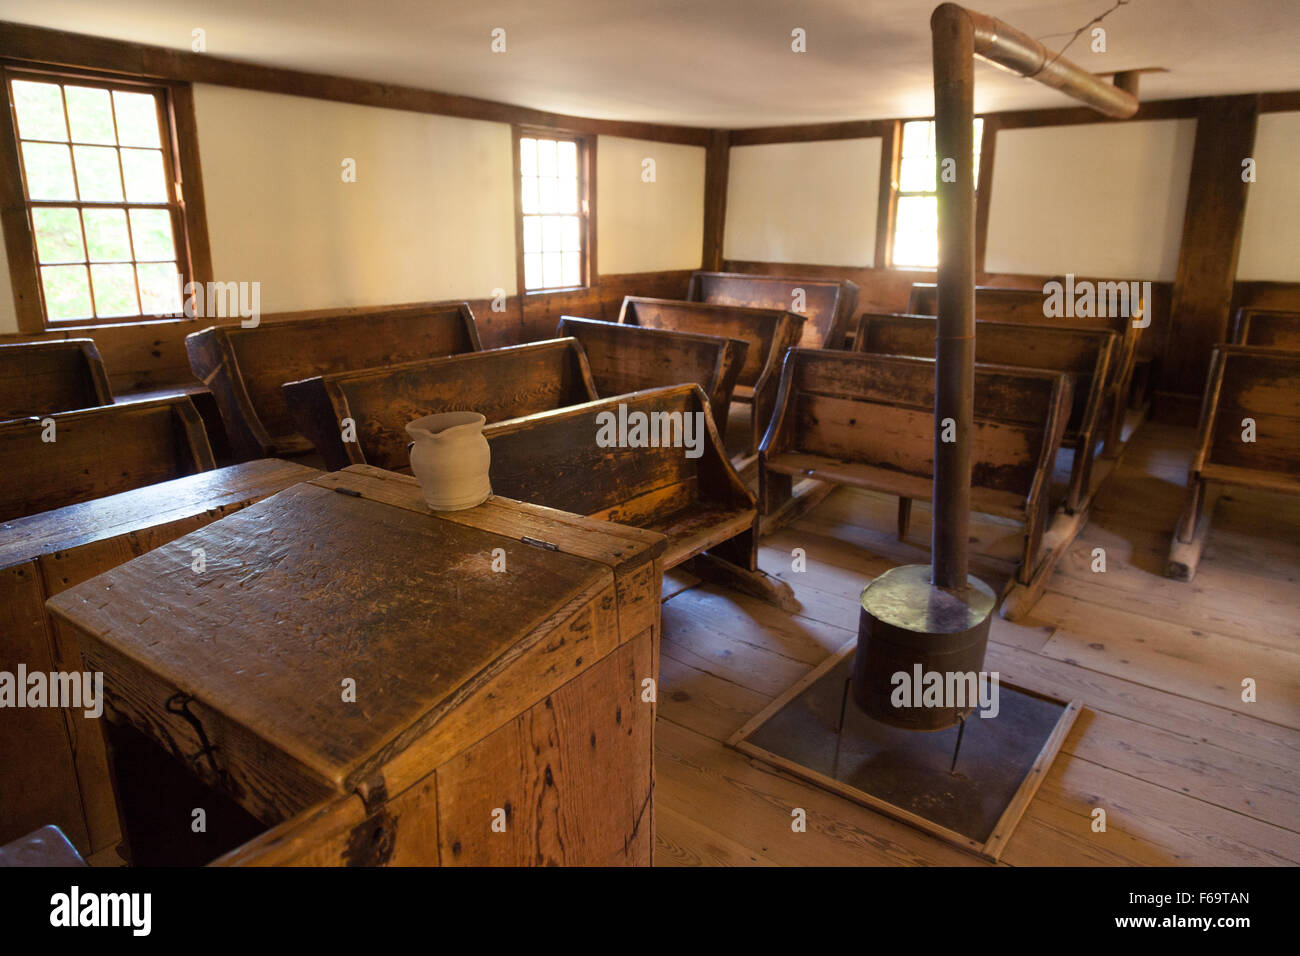 19th Century School House Old Sturbridge Village Living